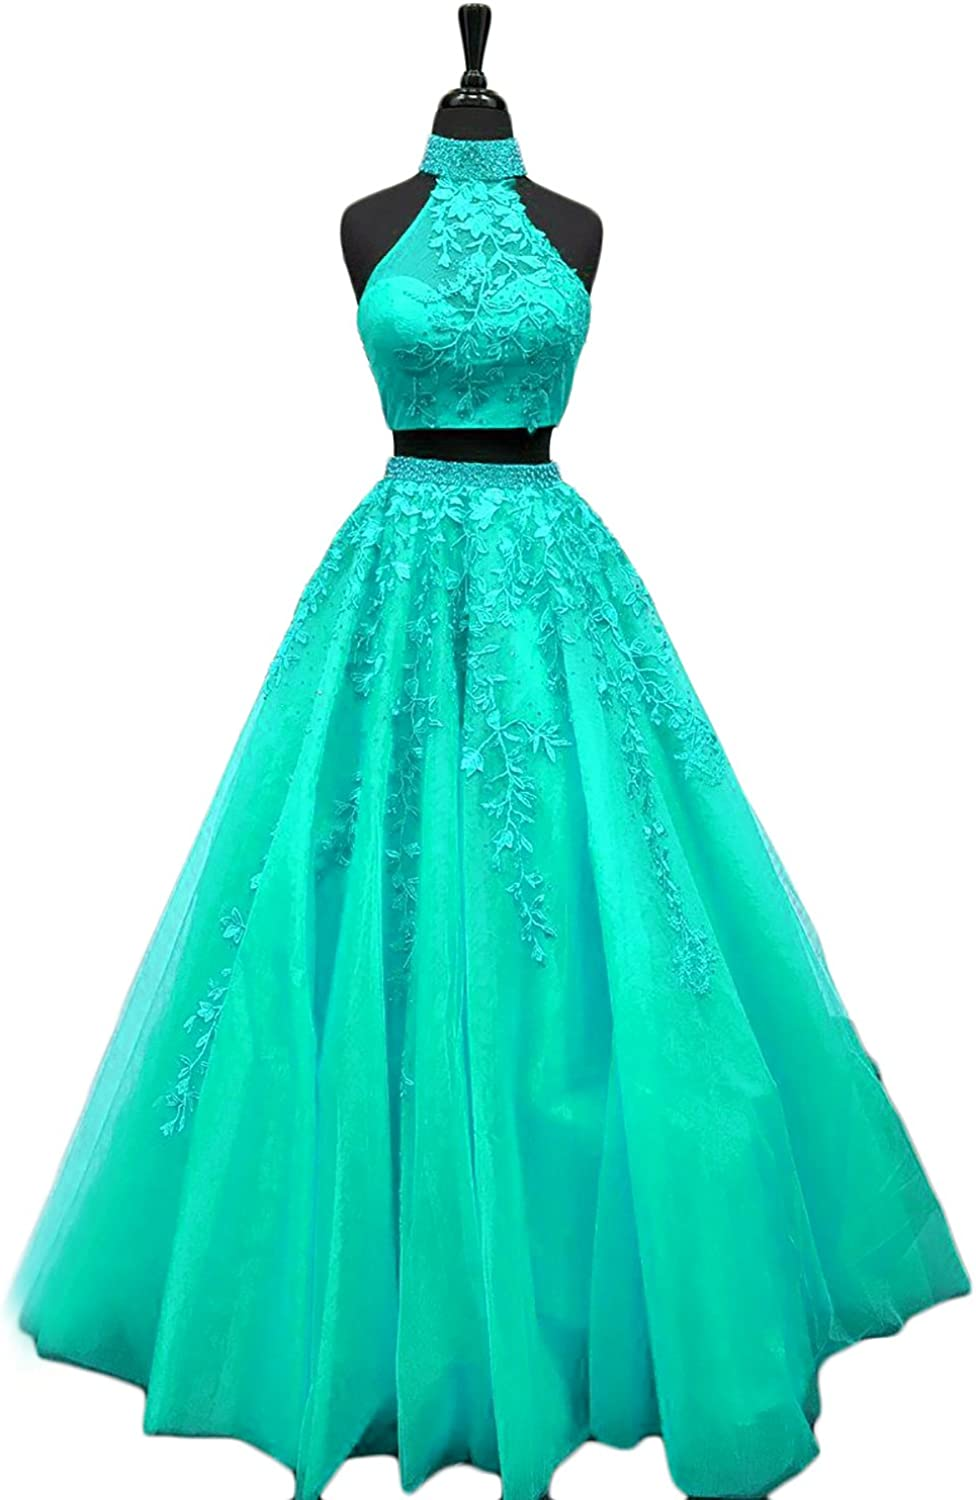 YSMei Women's Halter Beaded Prom Homecoming Dresses Two Pieces Long Party Gowns PM063